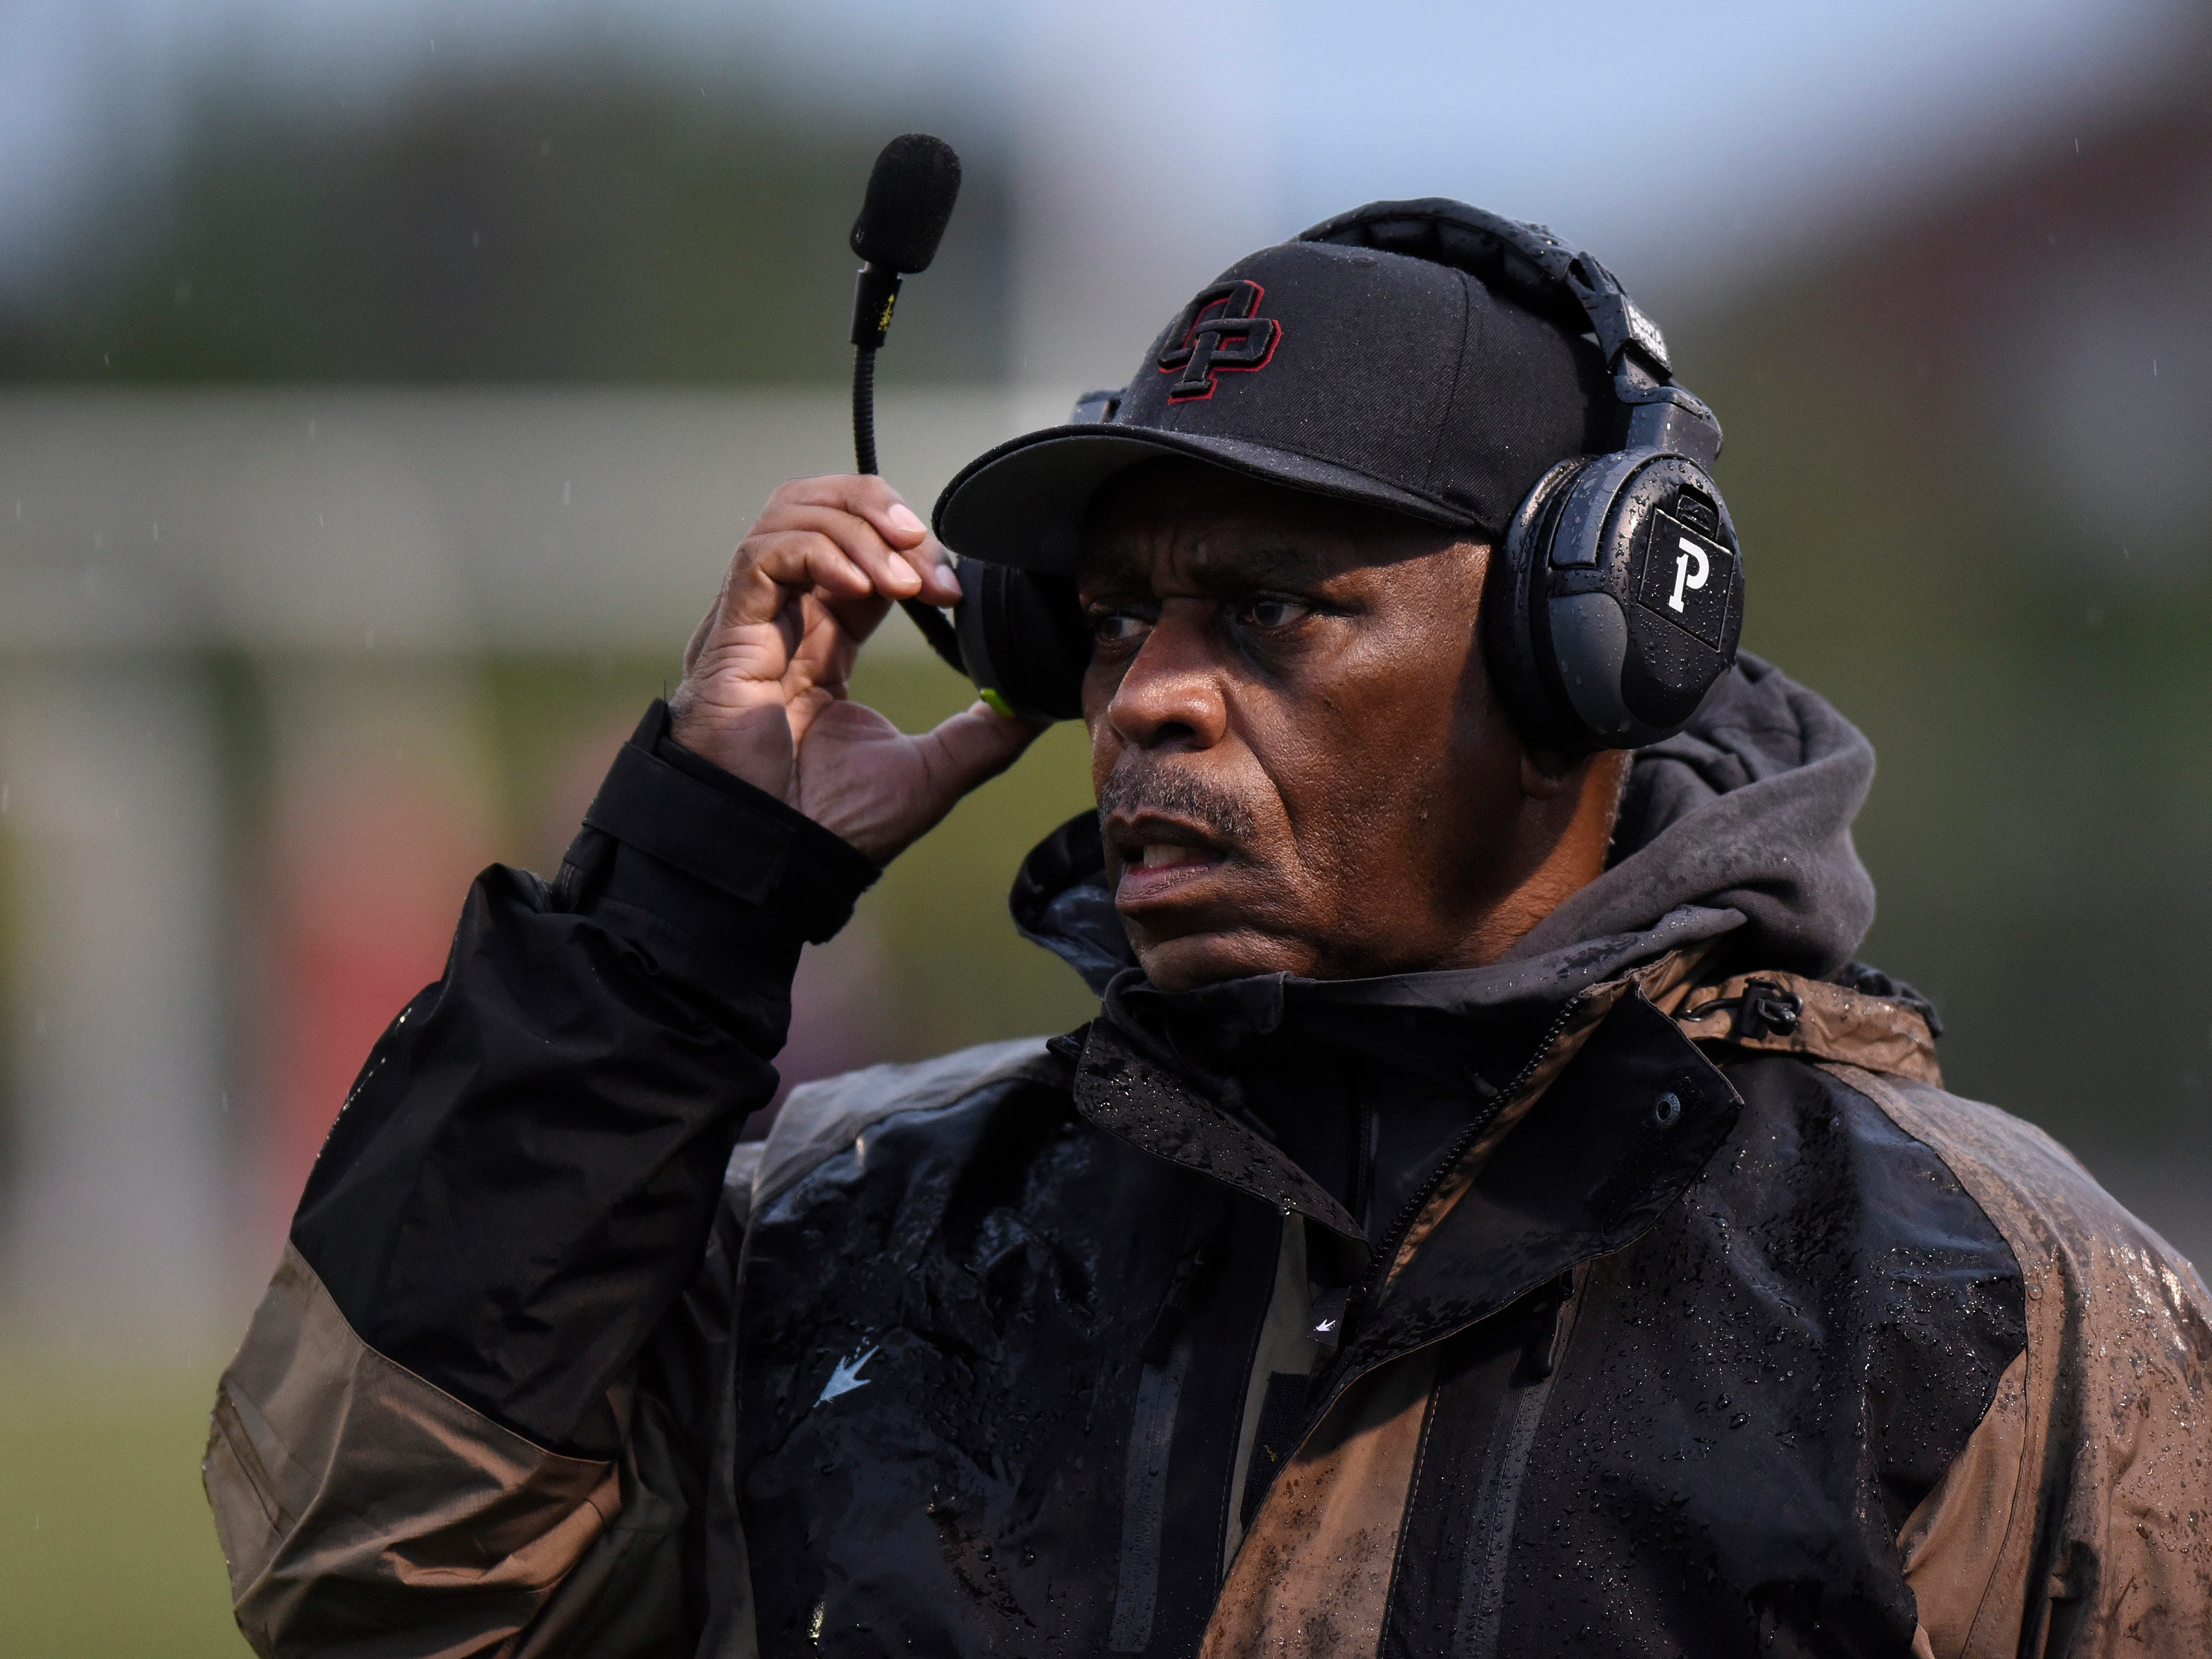 Oak Park head coach Greg Carter waches his team play against West Bloomfield during the first quarter.